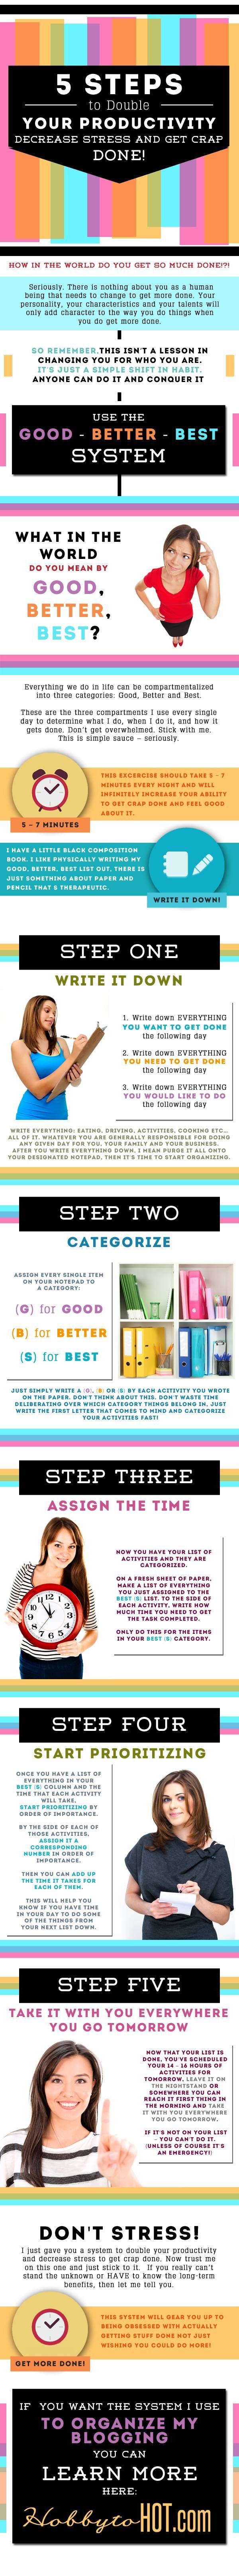 Infographic: 5 Steps to Double Your Productivity, Decrease Stress, and Get Crap Done! #infographic